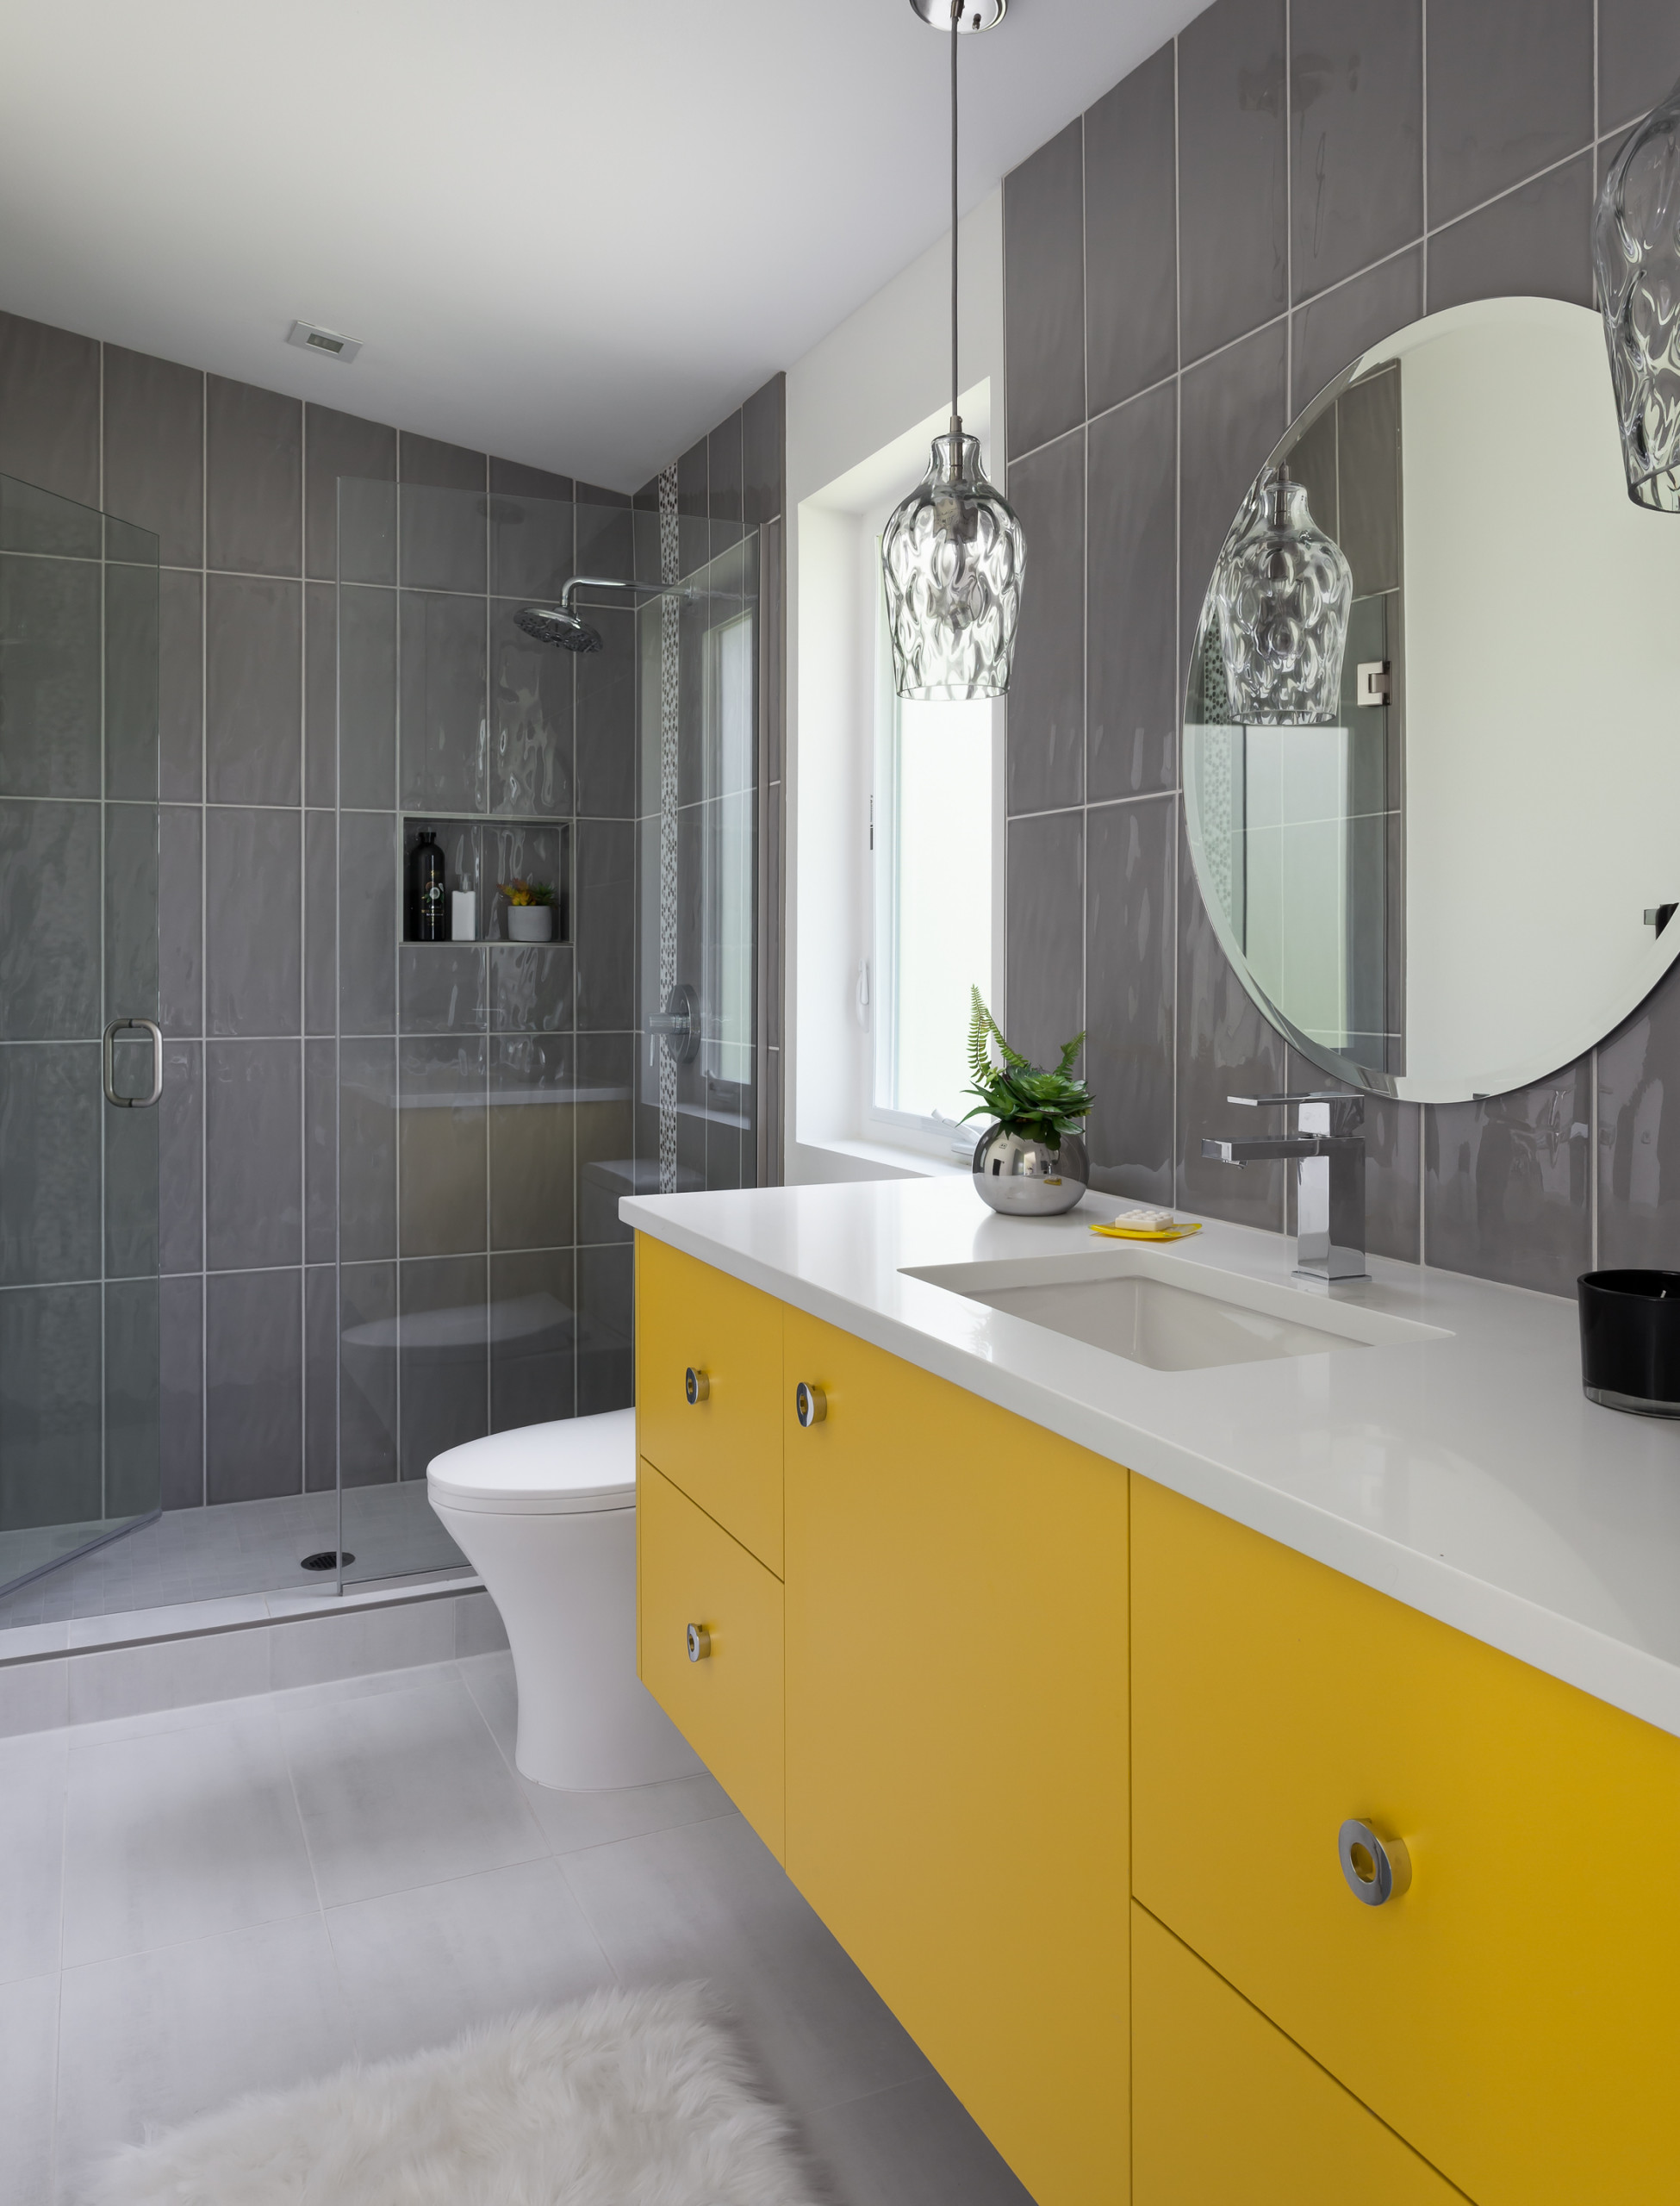 a contemporary grey bathroom with a bold yellow vanity, some pendant lamps and white countertops plus a round mirror